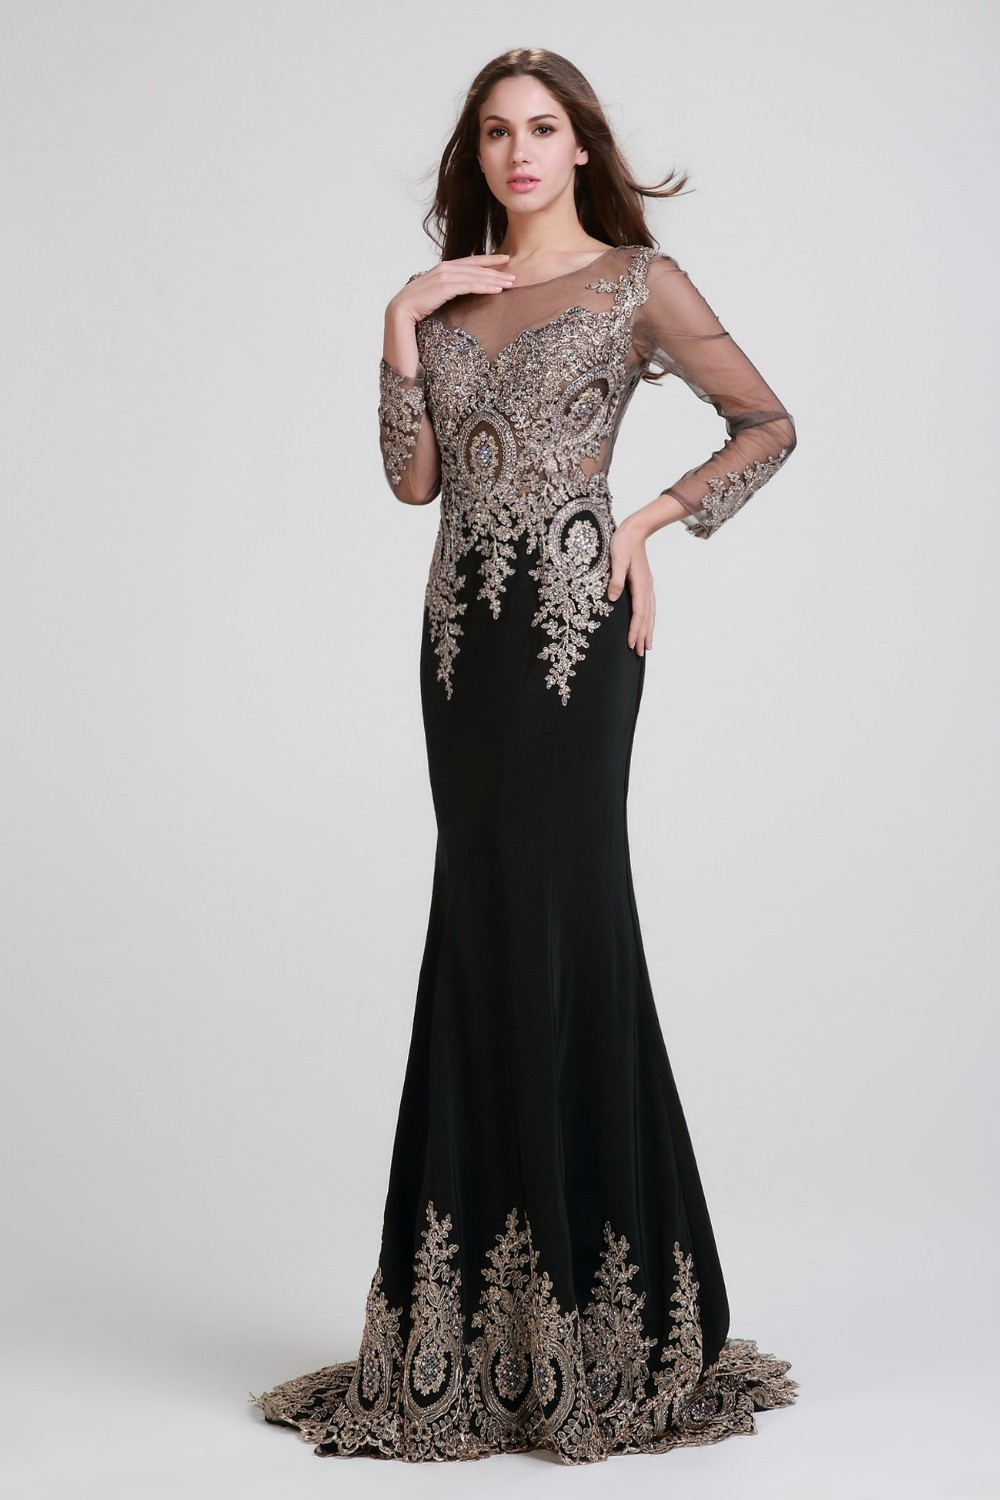 Compare Prices on Black Long Formal Gown- Online Shopping/Buy Low ...